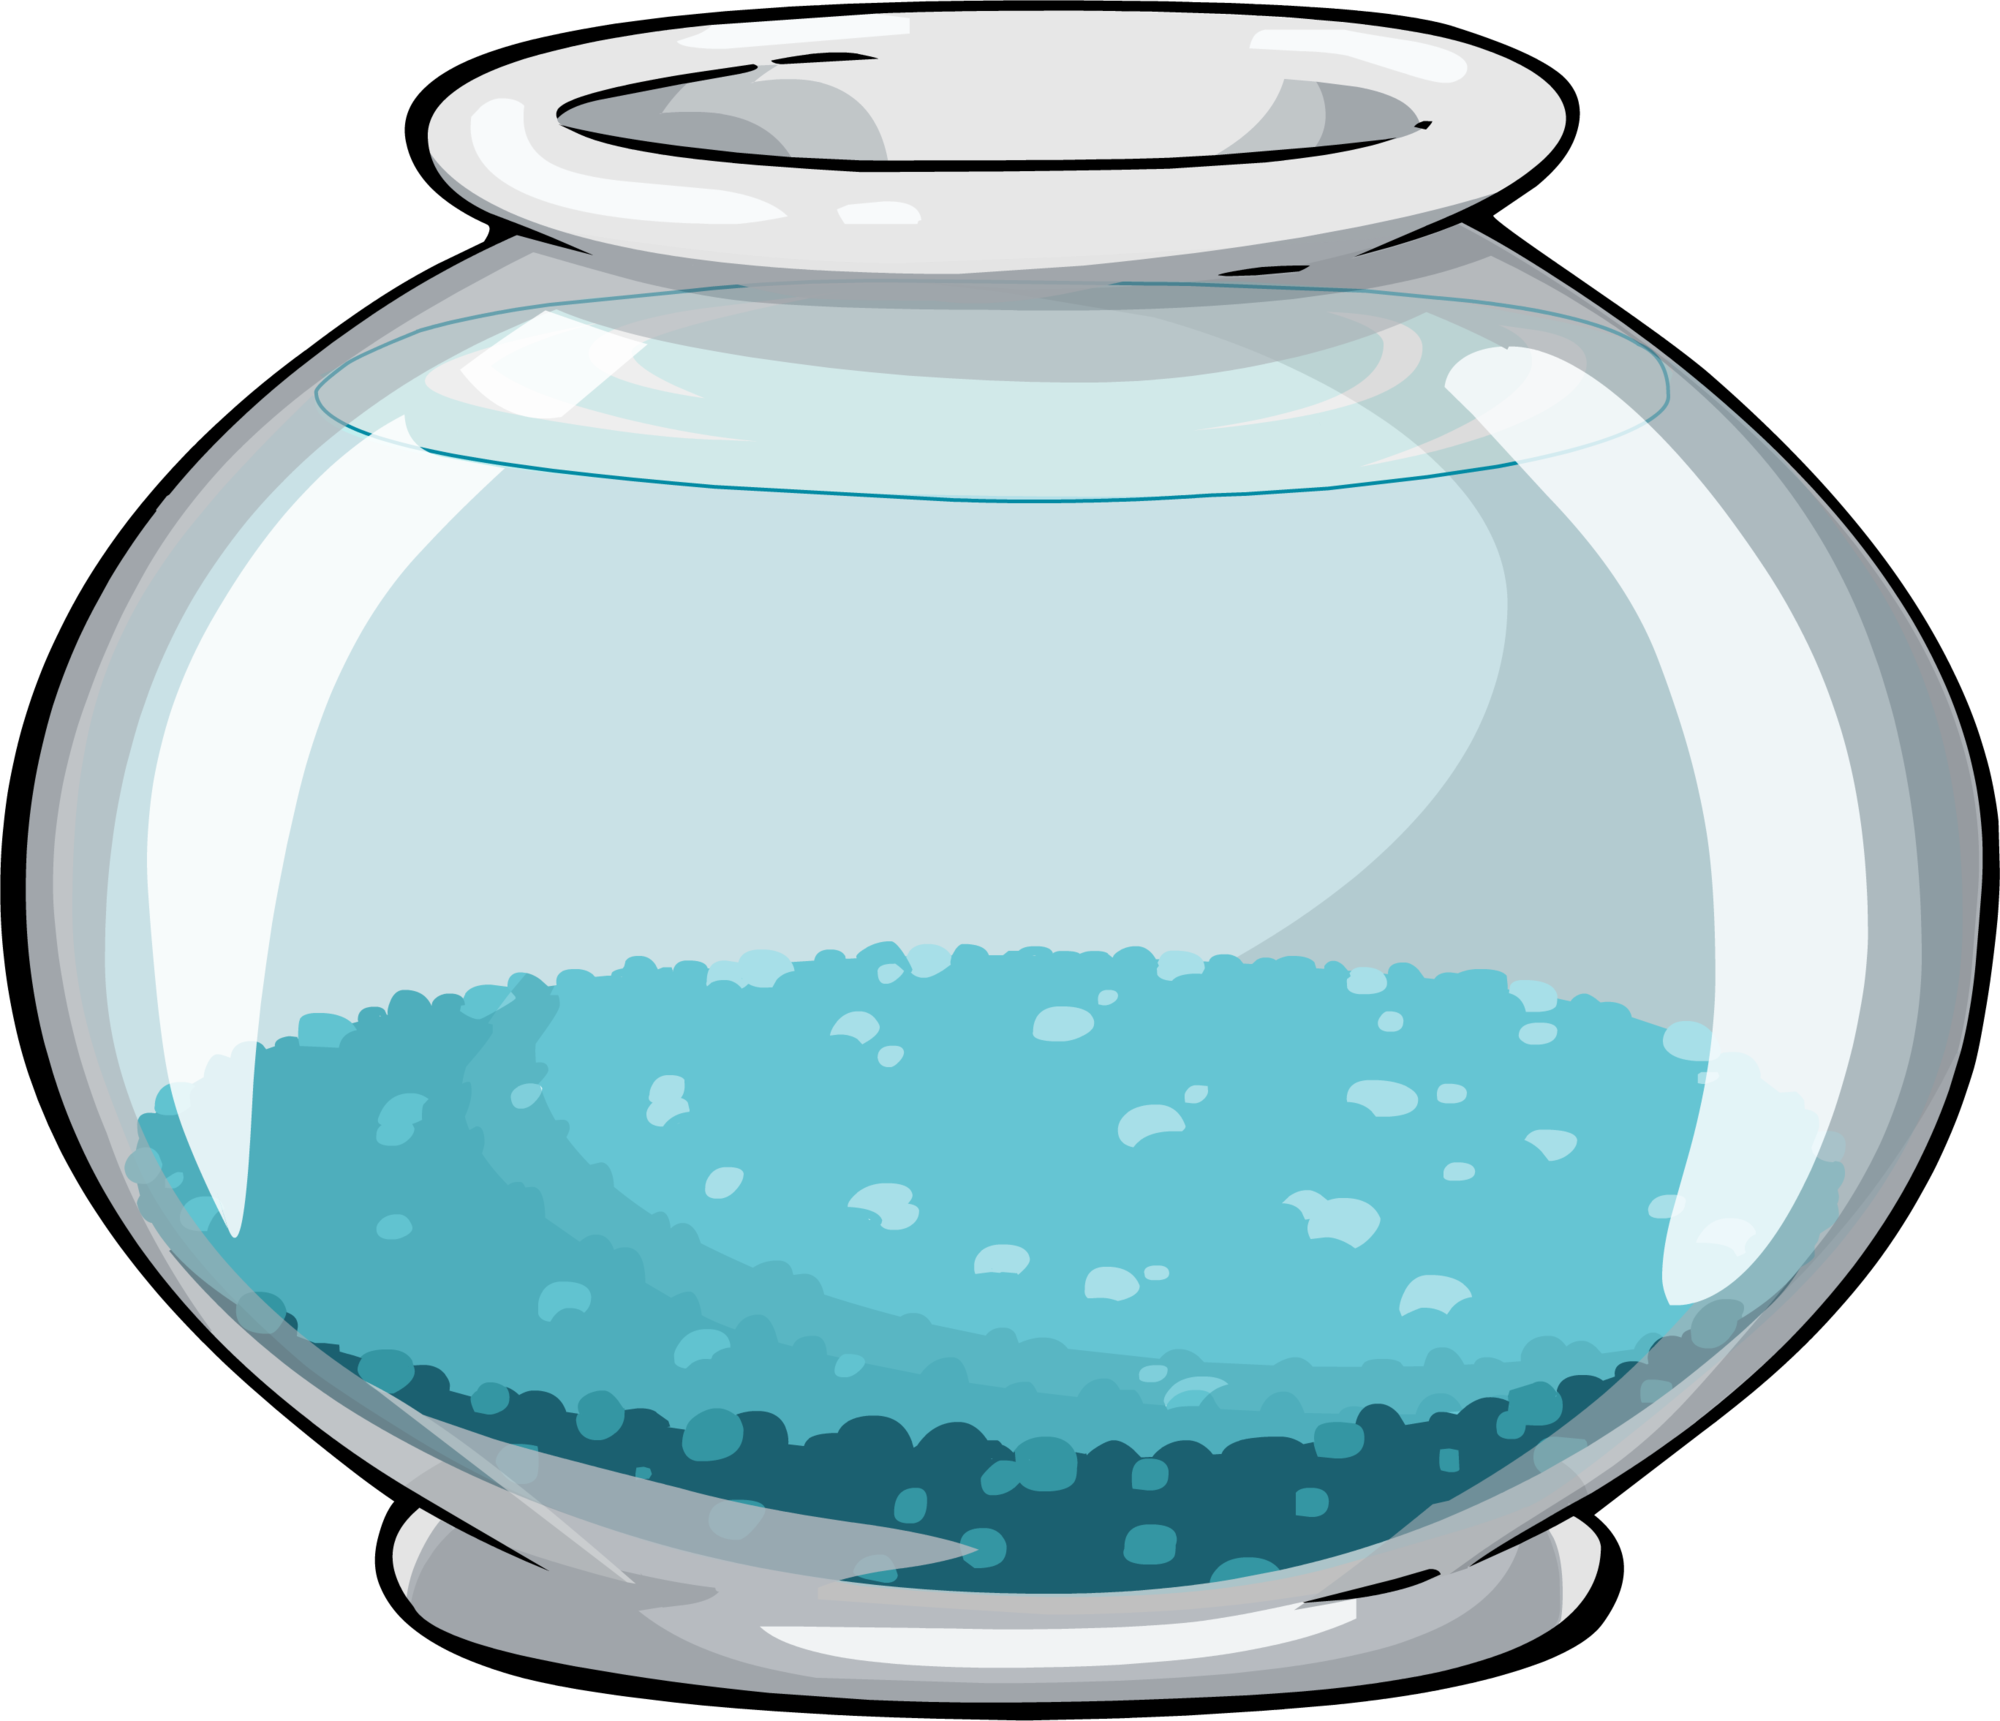 royalty free stock Fish bowl picture free. Fishbowl clipart.